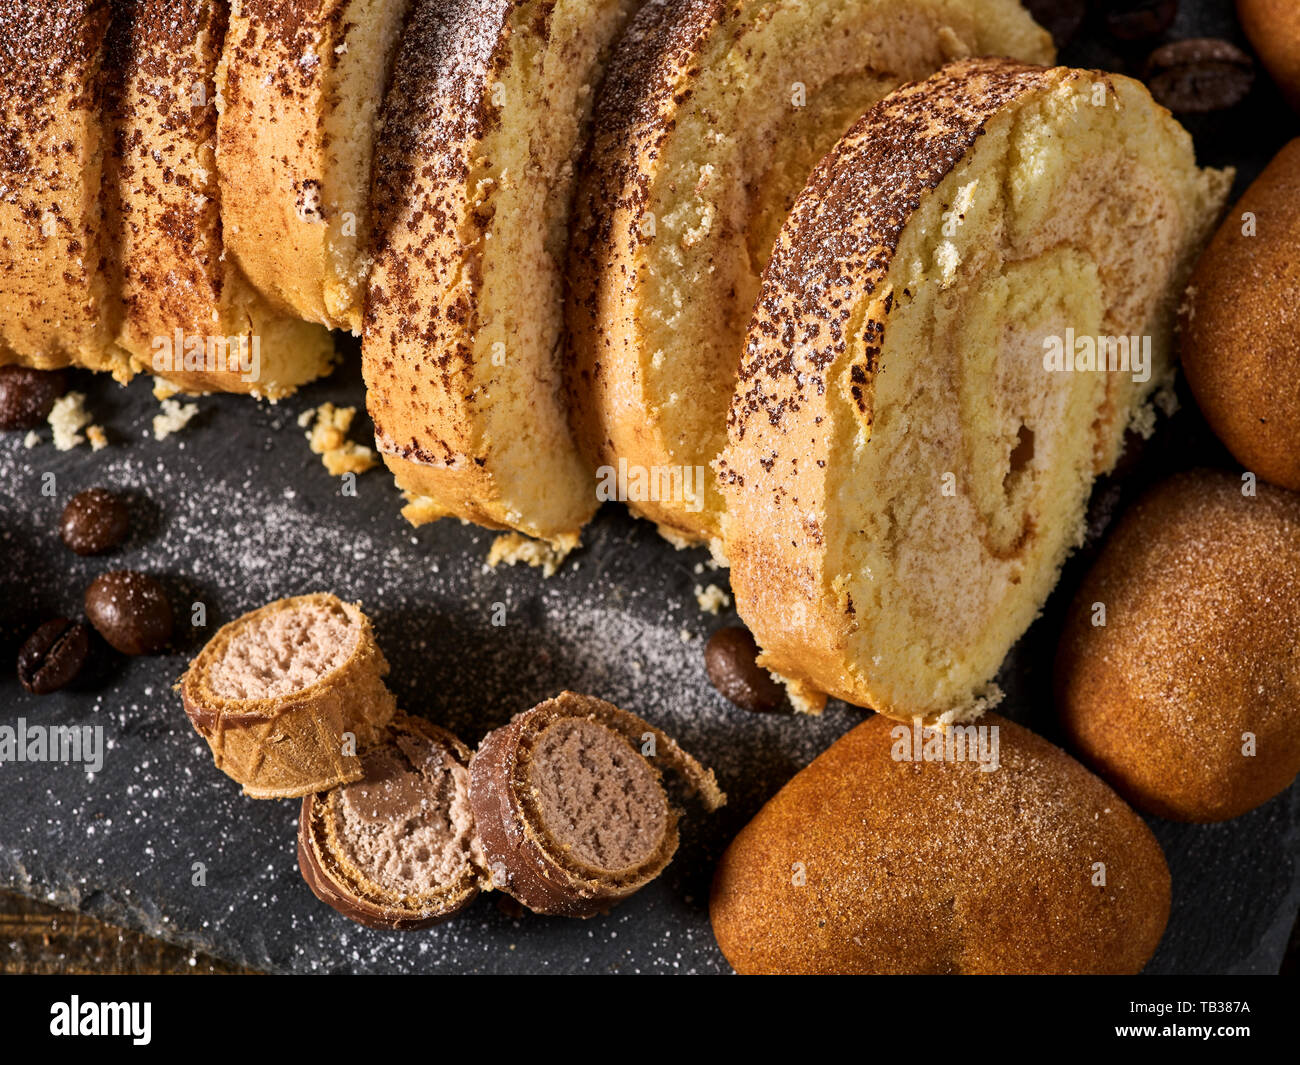 Heart Cake Stock Photos & Heart Cake Stock Images - Page 21 - Alamy